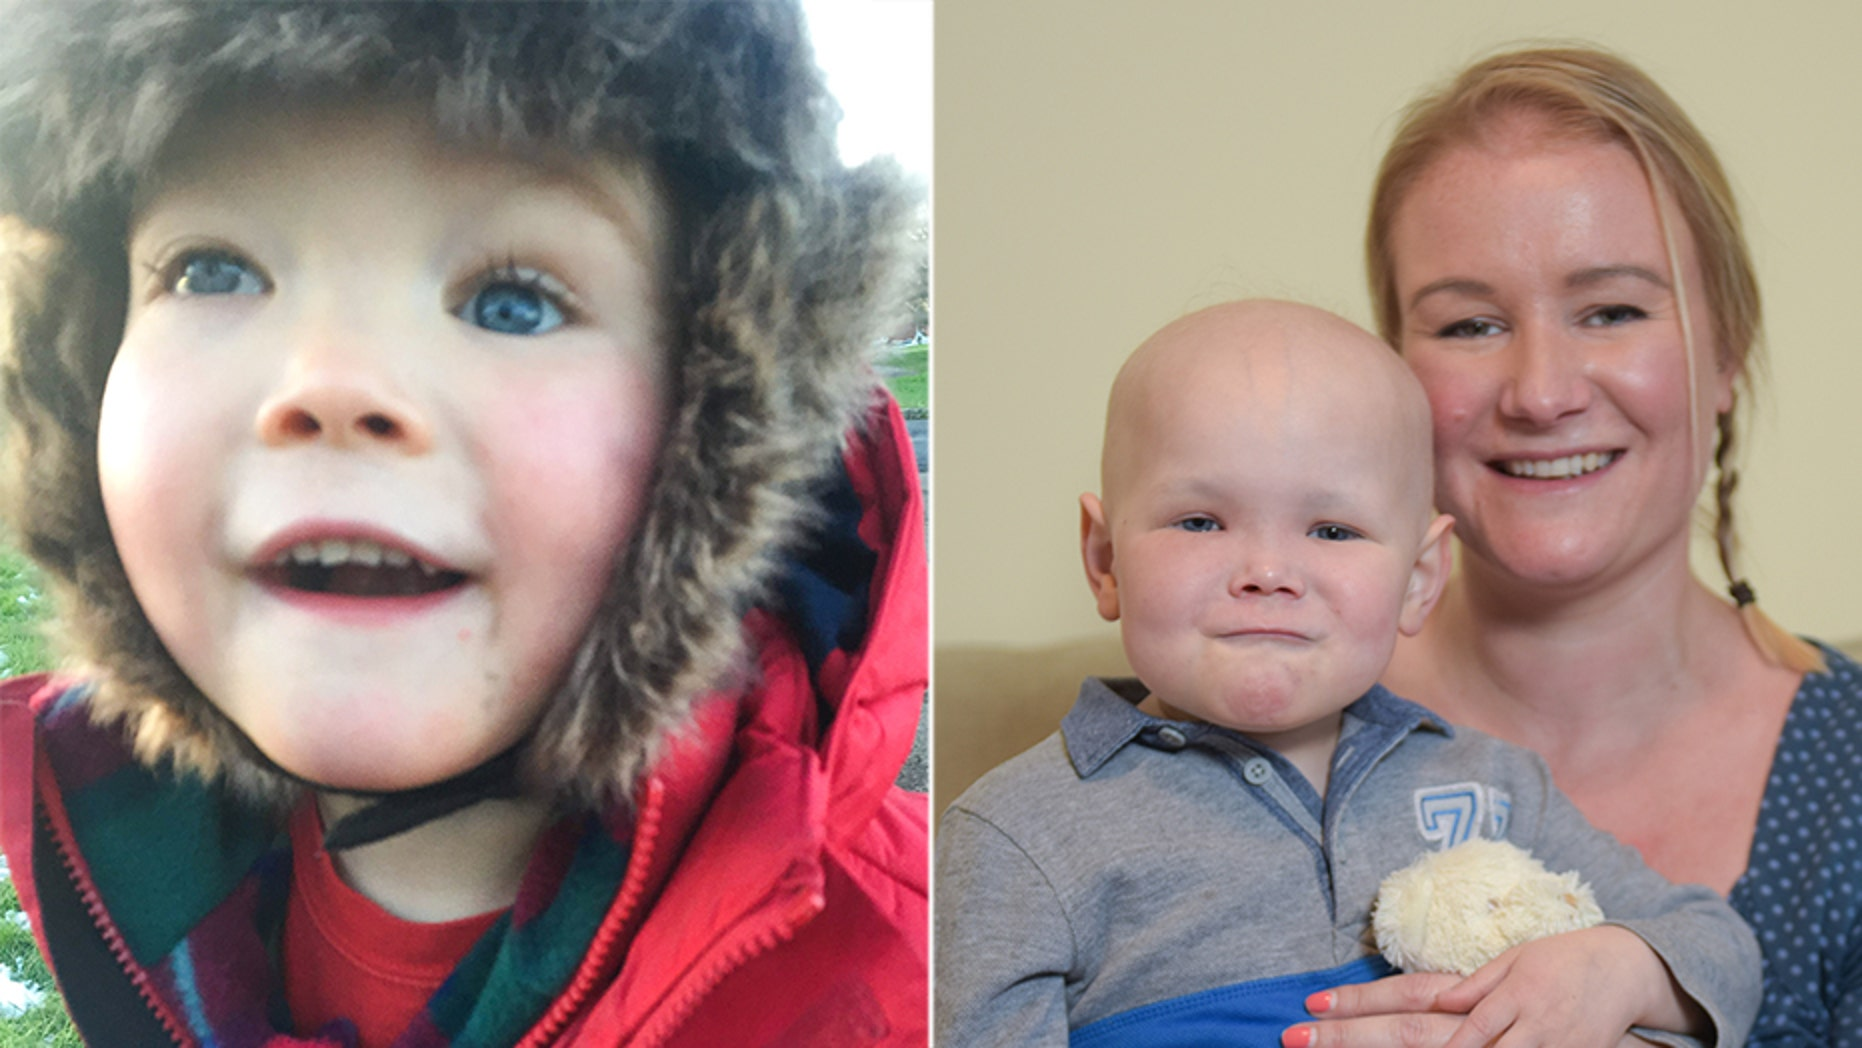 The cancer had caused the bone structure around Harri's eye to shift, and required several types of therapy to treat.